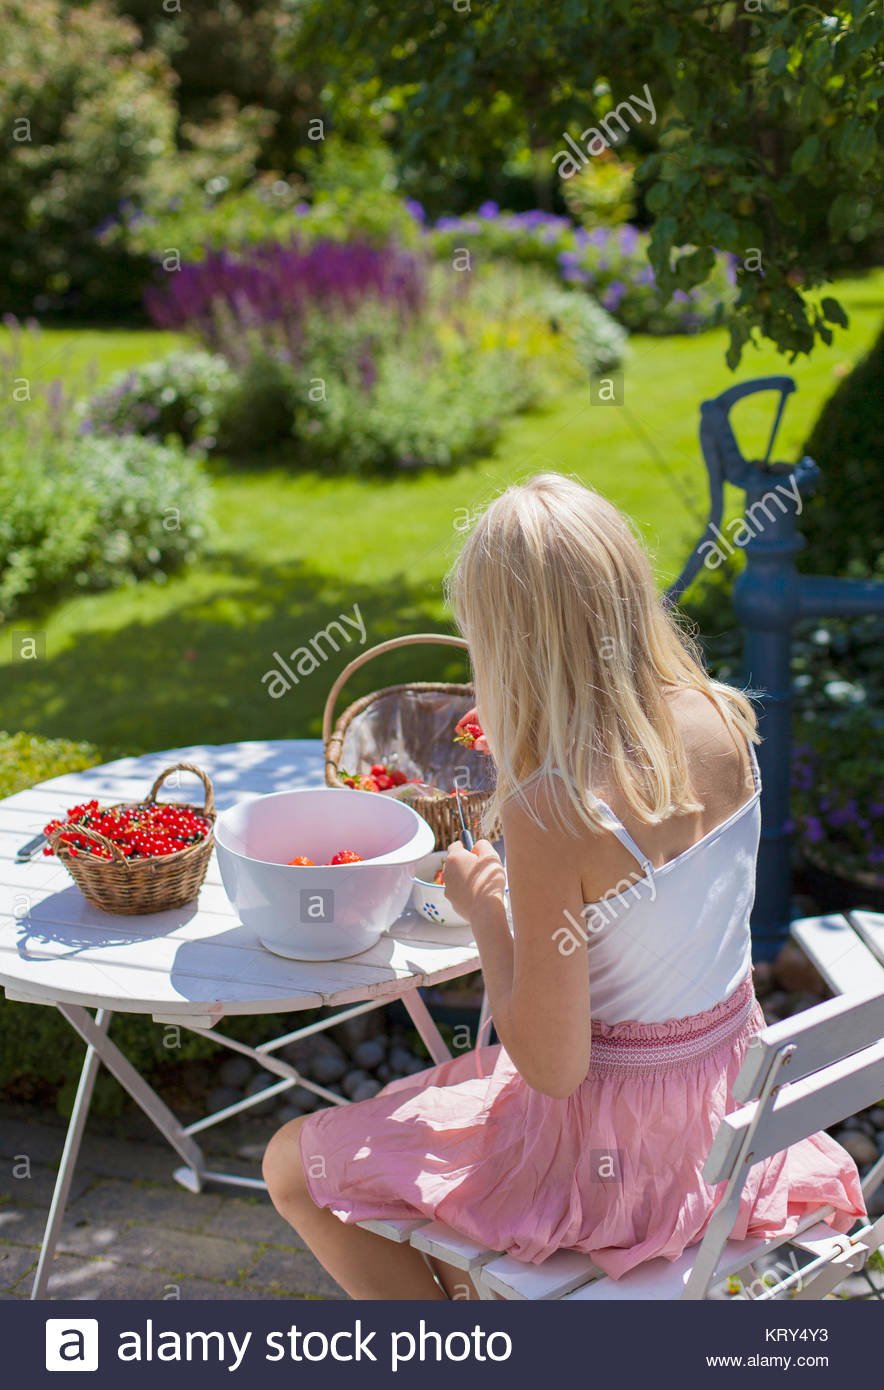 Girl cutting berries - Stock Image